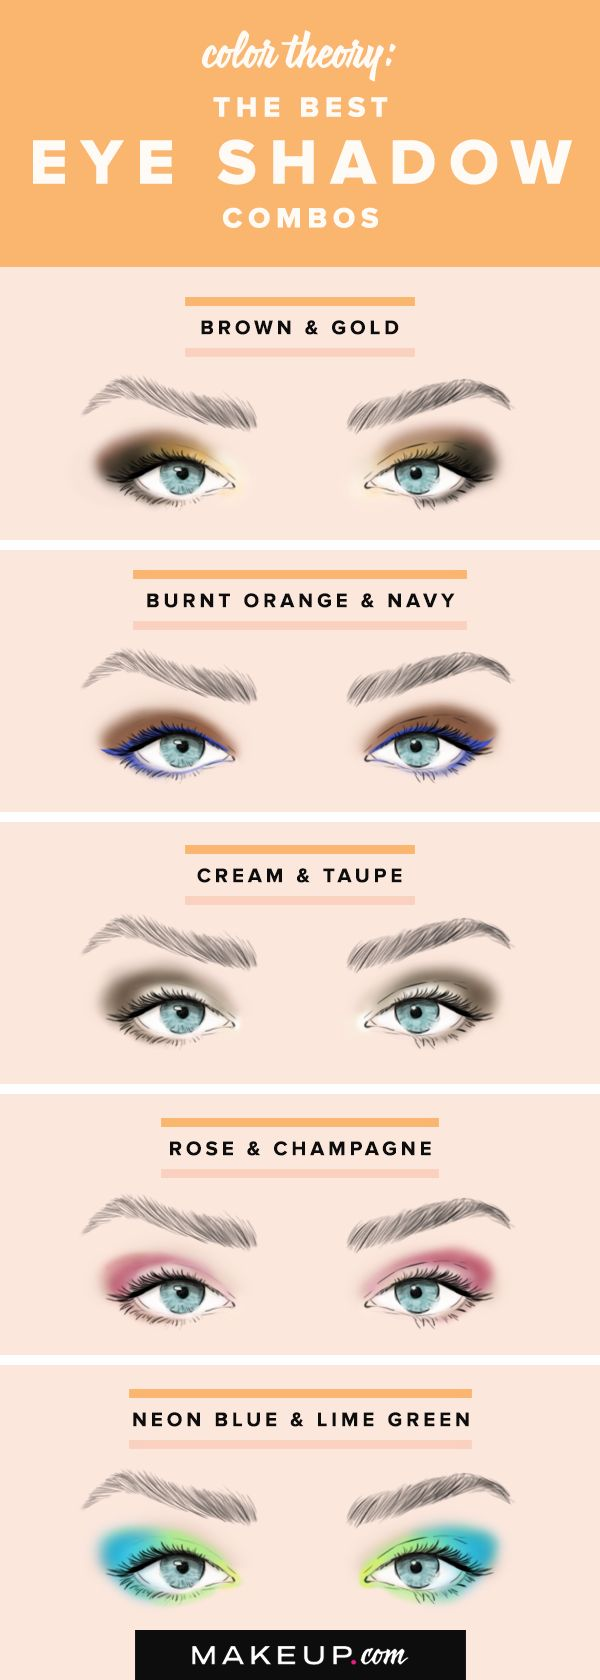 Color Theory: The Best Eye Shadow Combos